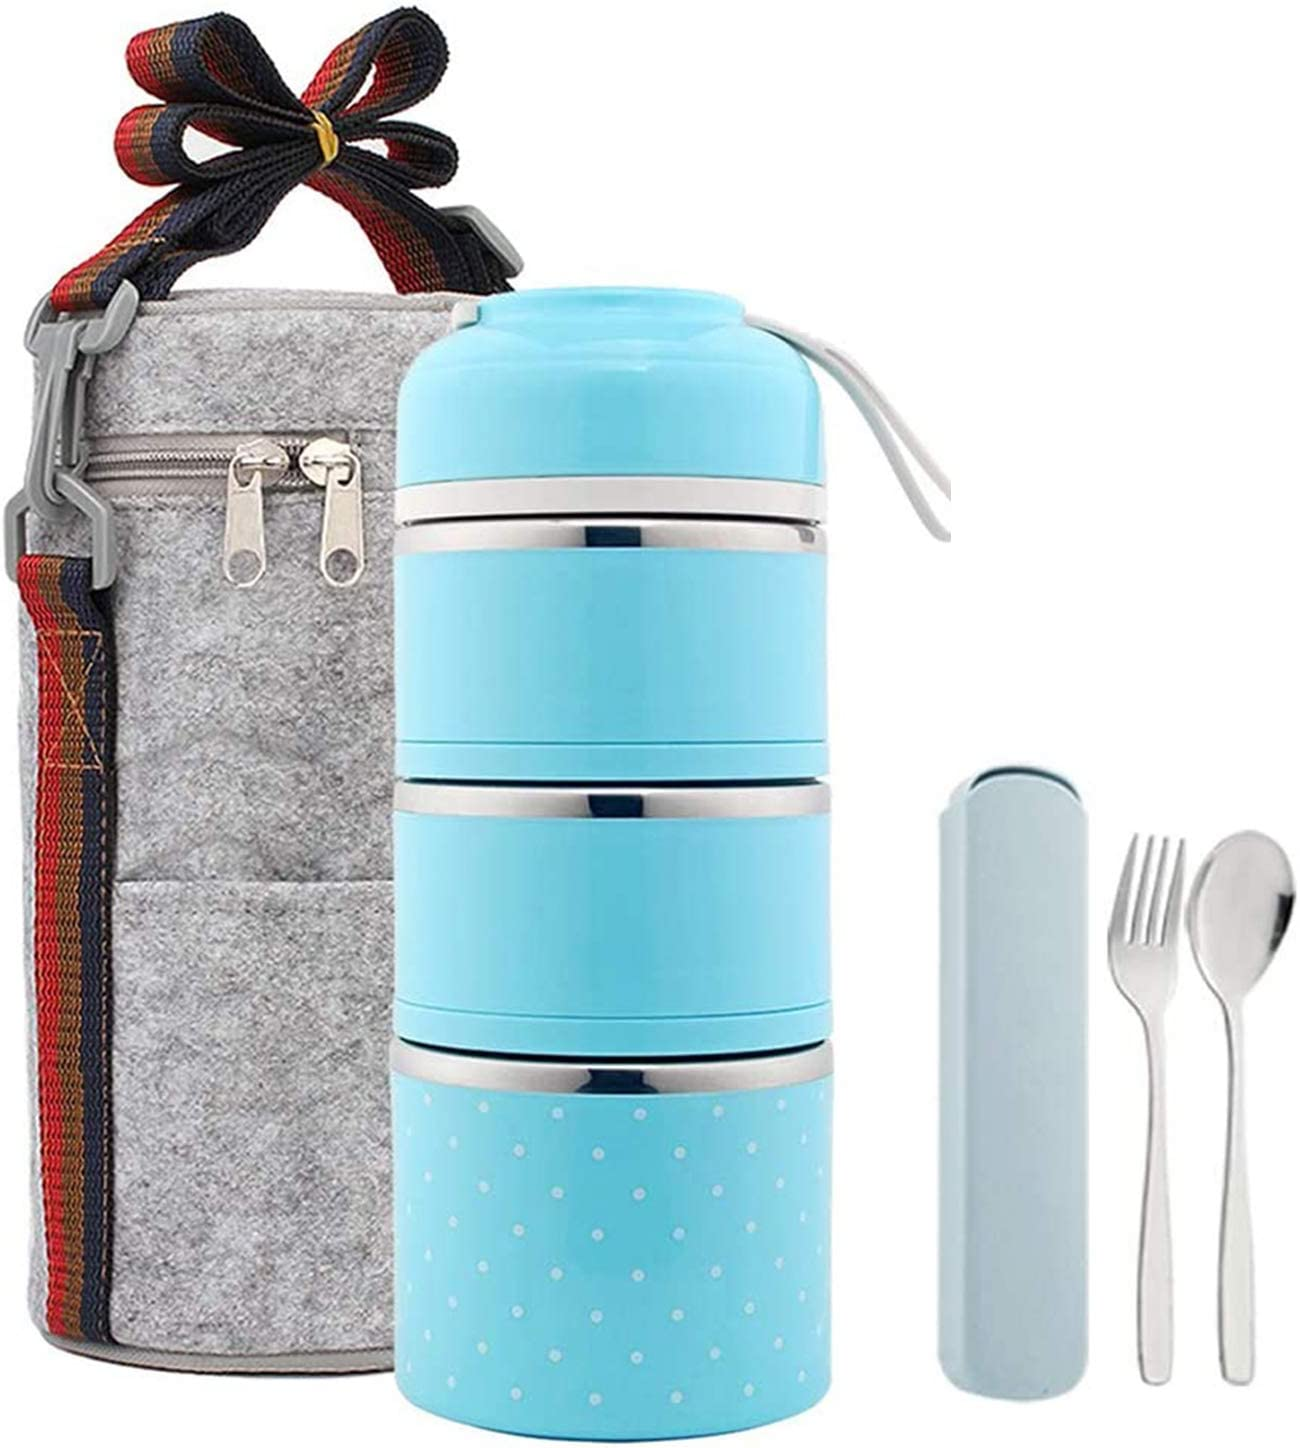 Bento Lunch Box, Stackable Stainless Steel Thermal Lunch Box with Insulated Lunch Bag and Folding Spoon, Meal Prep Bento Box Containers for Adults School,Office, BPA Free(3Tier,Blue)